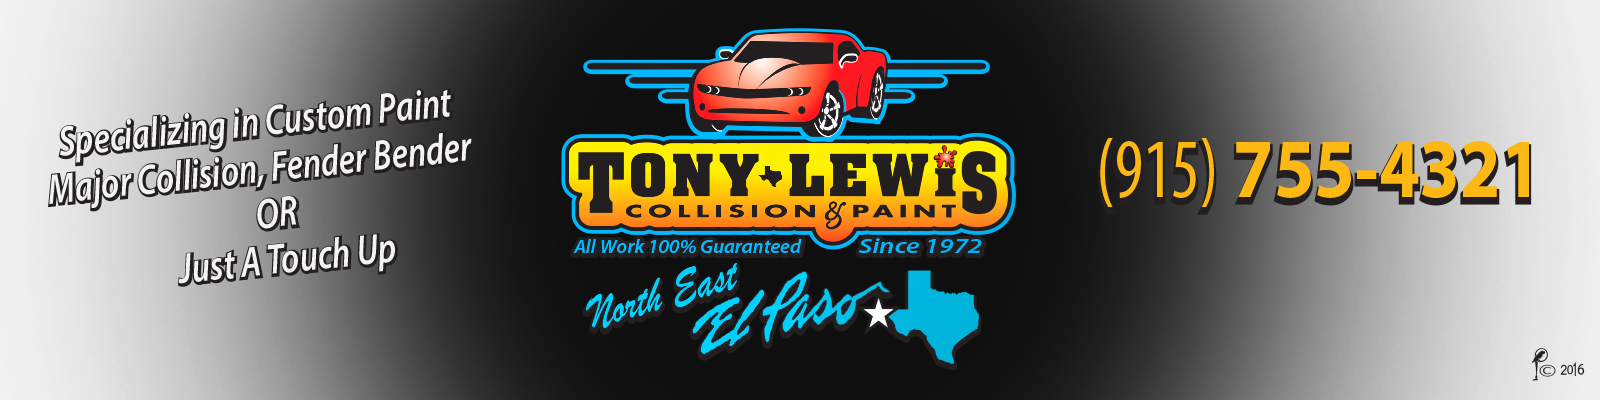 tony lewis collision paint auto body repair